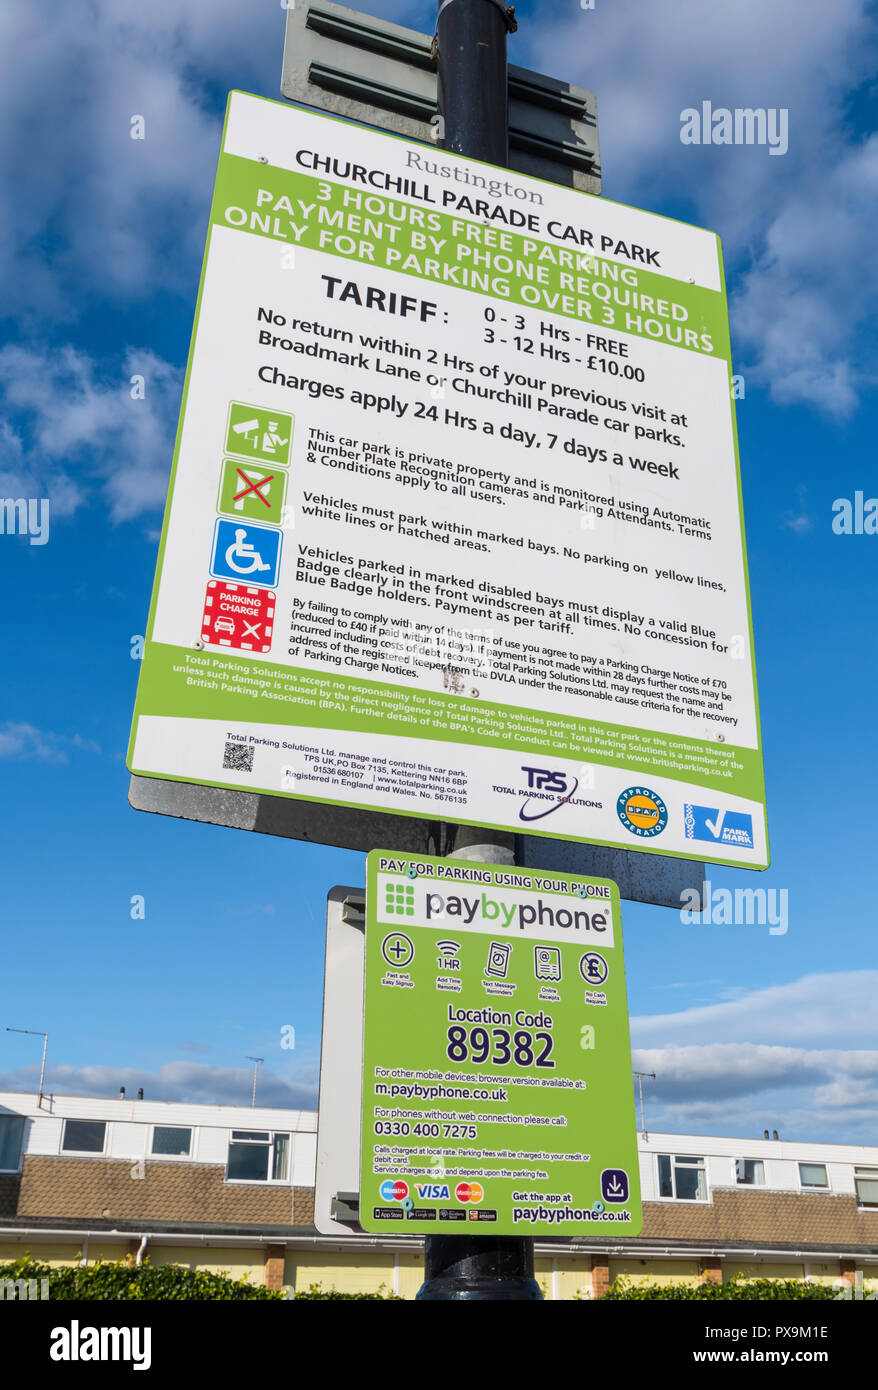 Car park tariff and charges sign in a British car park in Churchill Parade, Rustington, West Sussex, England, UK. - Stock Image